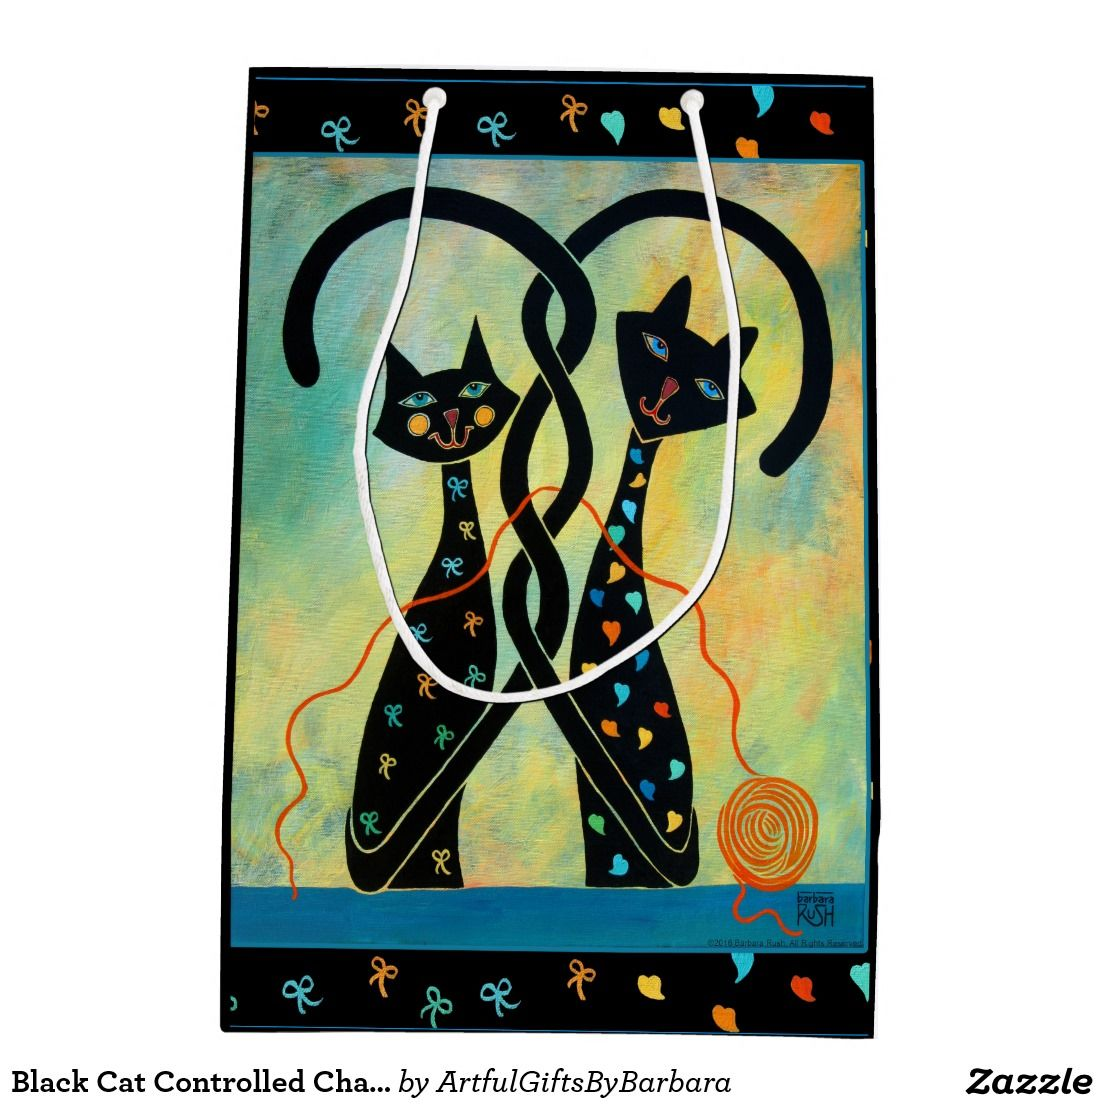 Black Cat Controlled Chaos - Custom Gift Bag Medium Gift Bag. Adorable cats with intertwined tails getting ready to take that ball of yarn and have fun with it! They are indeed Controlled Chaos! Based on Controlled Chaos original painting by Barbara Rush. For original GeoCubist art by Barbara Rush, please visit www.barbararush.com All images and designs ©2007-2016 Barbara Rush. All Rights Reserved.